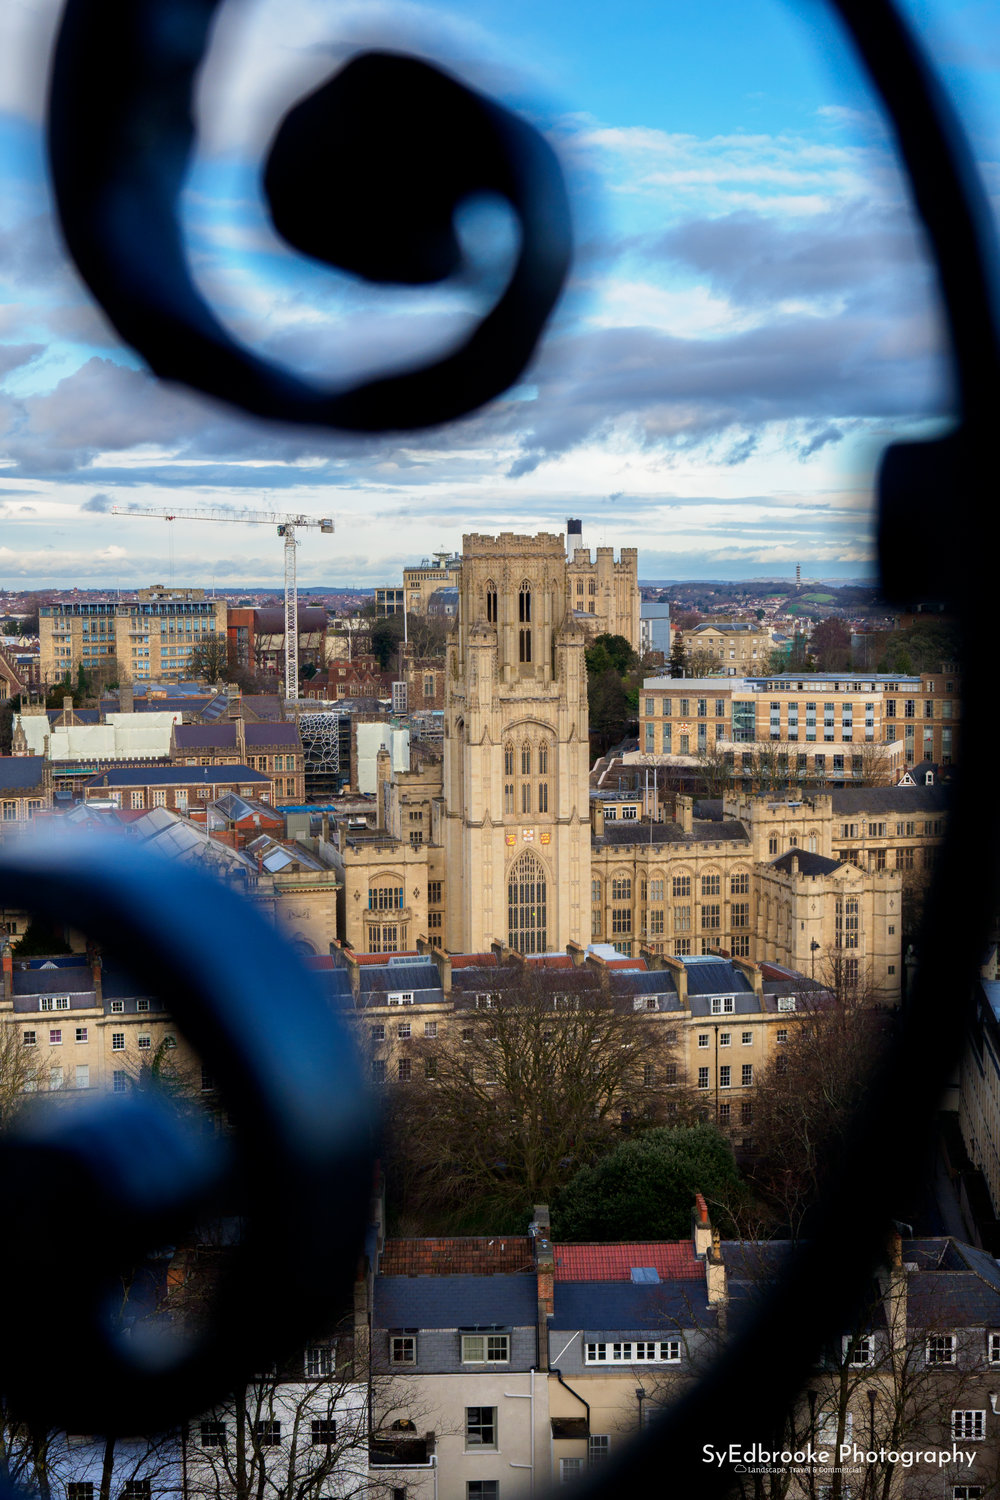 Bristol University Campus. 46mm, ISO 200, f 2.8, 1/1250